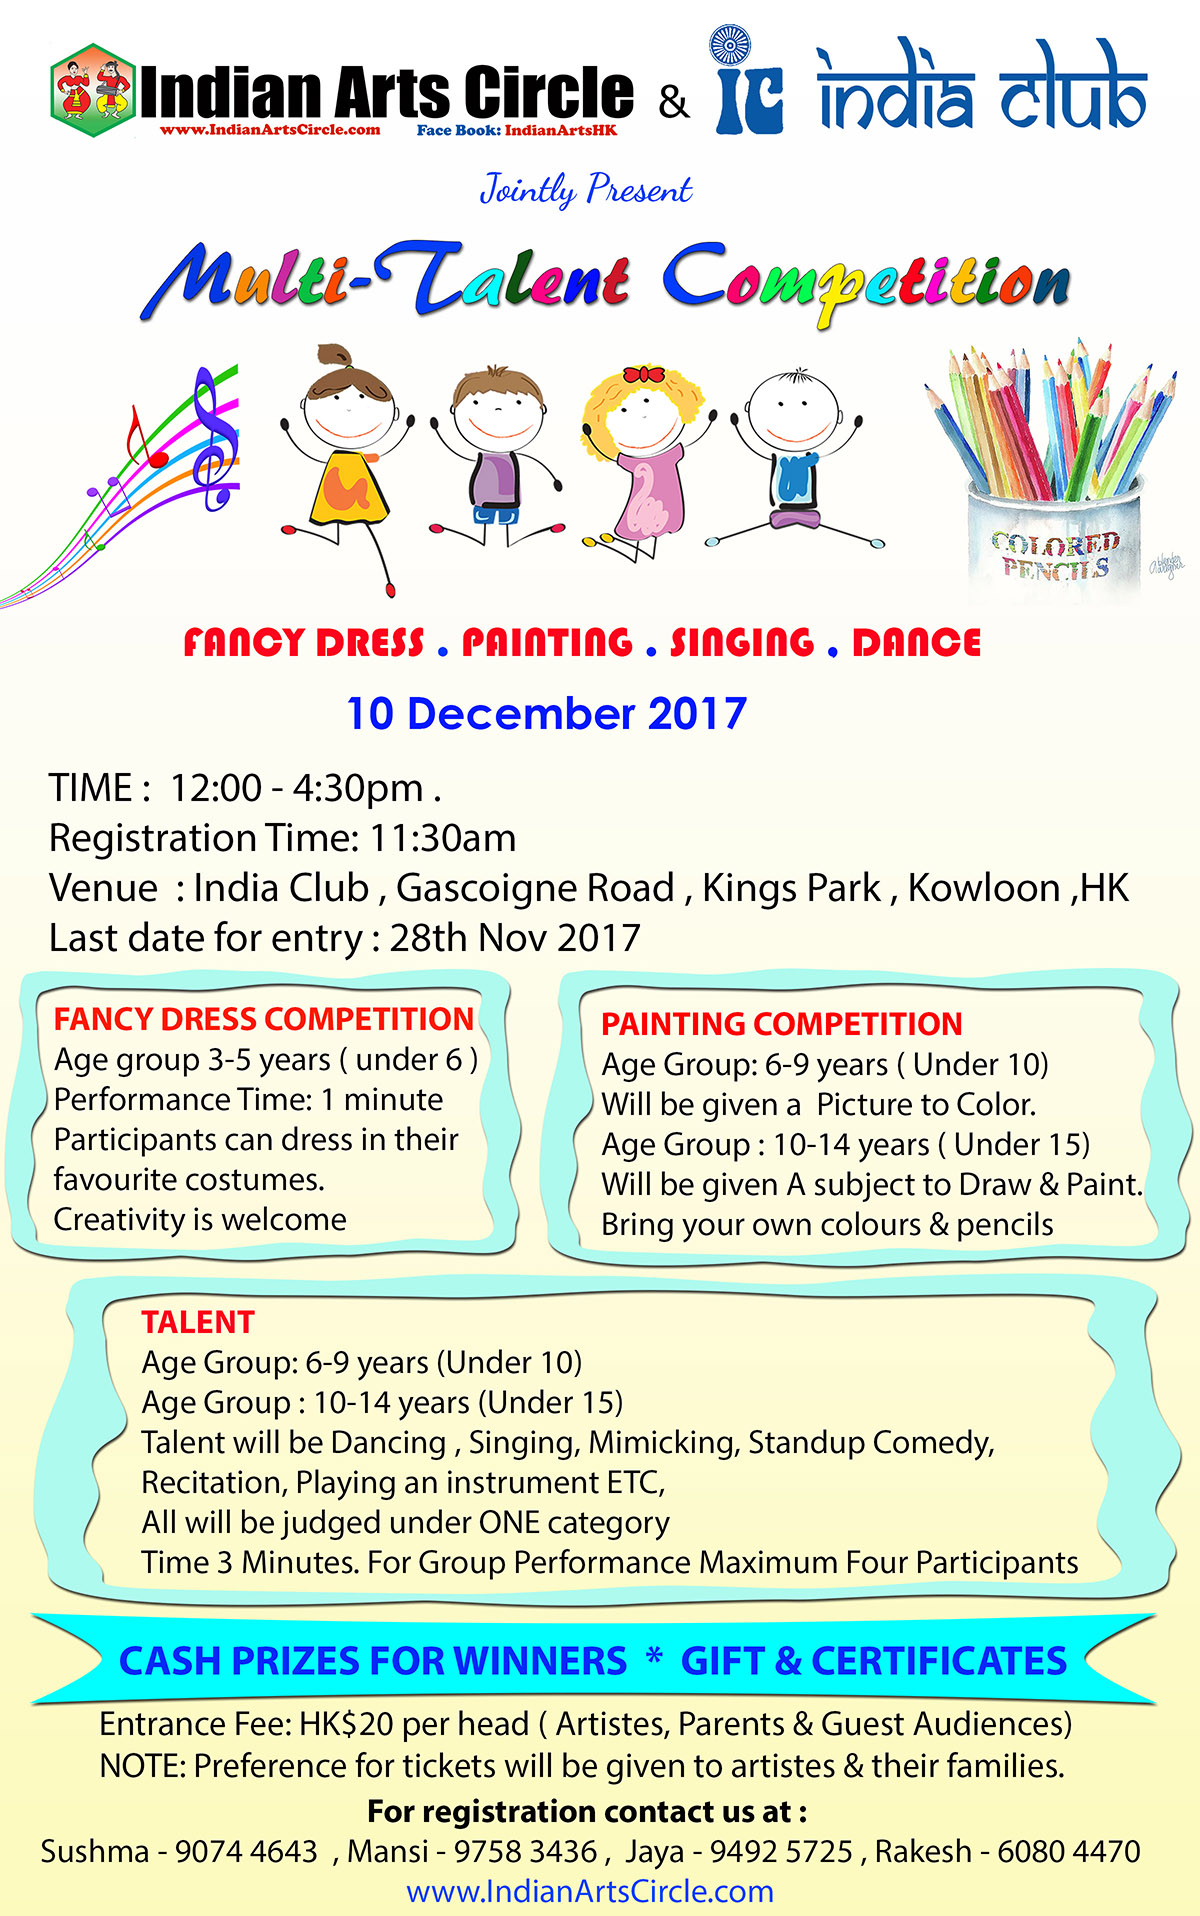 Talent & Painting Competition